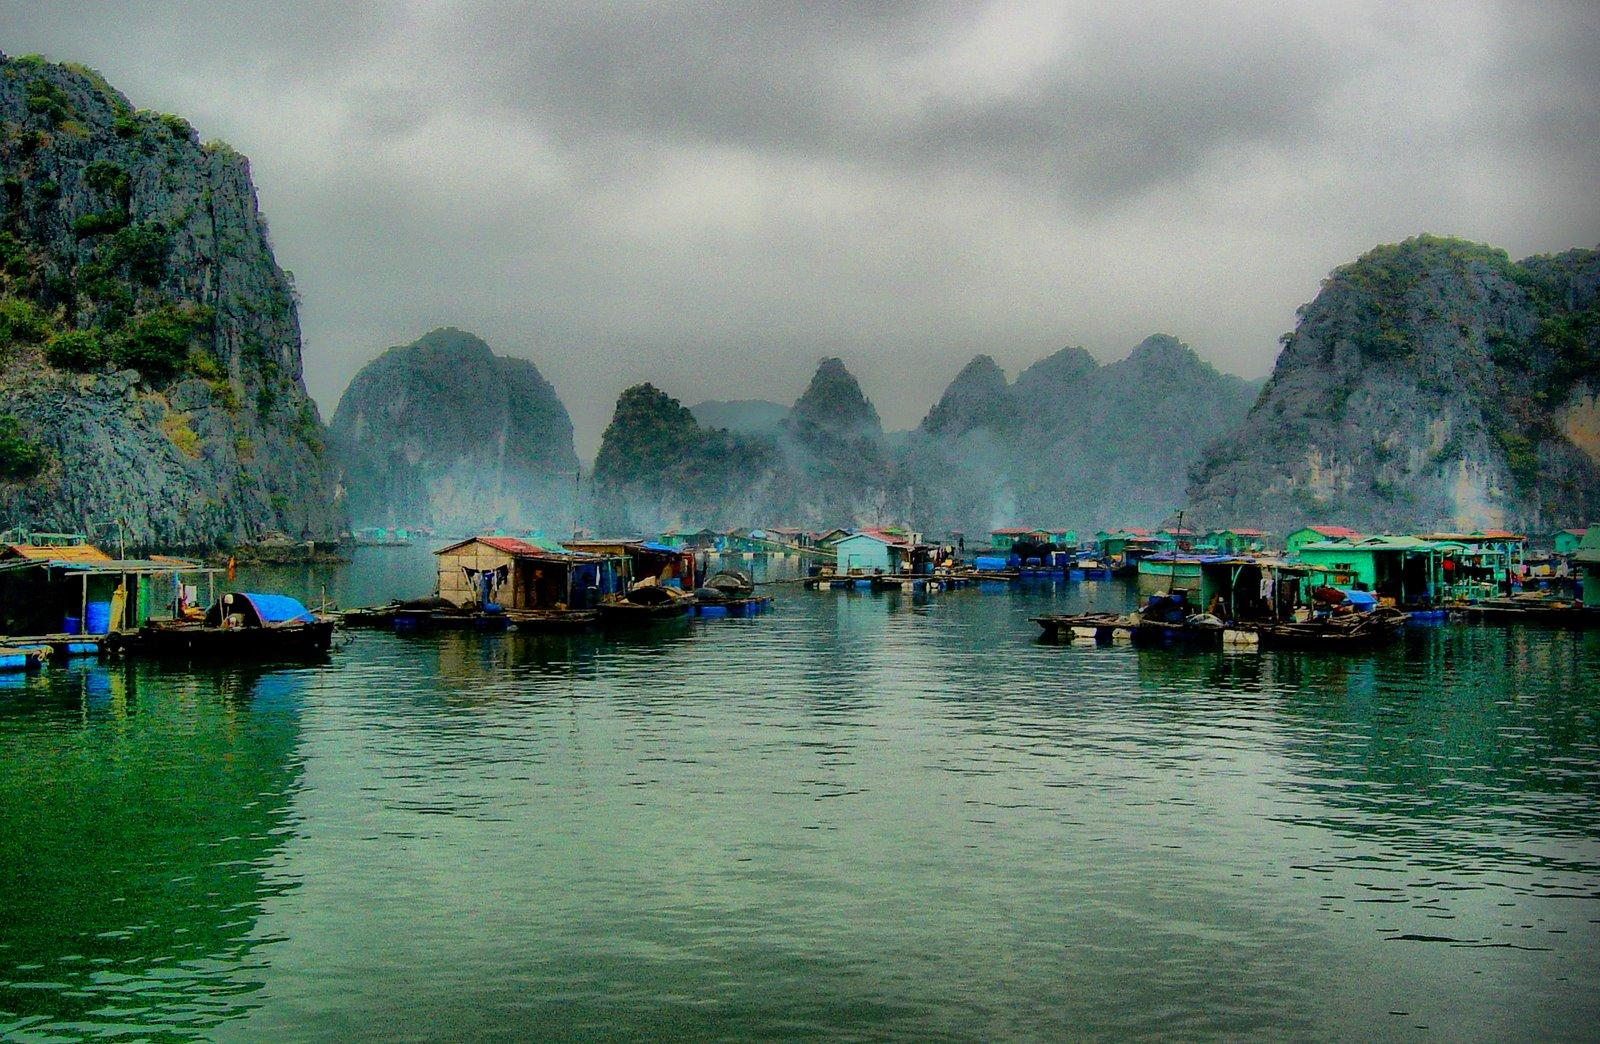 halong-bay-6.jpg (JPEG-Grafik, 1600 × 1044 Pixel)